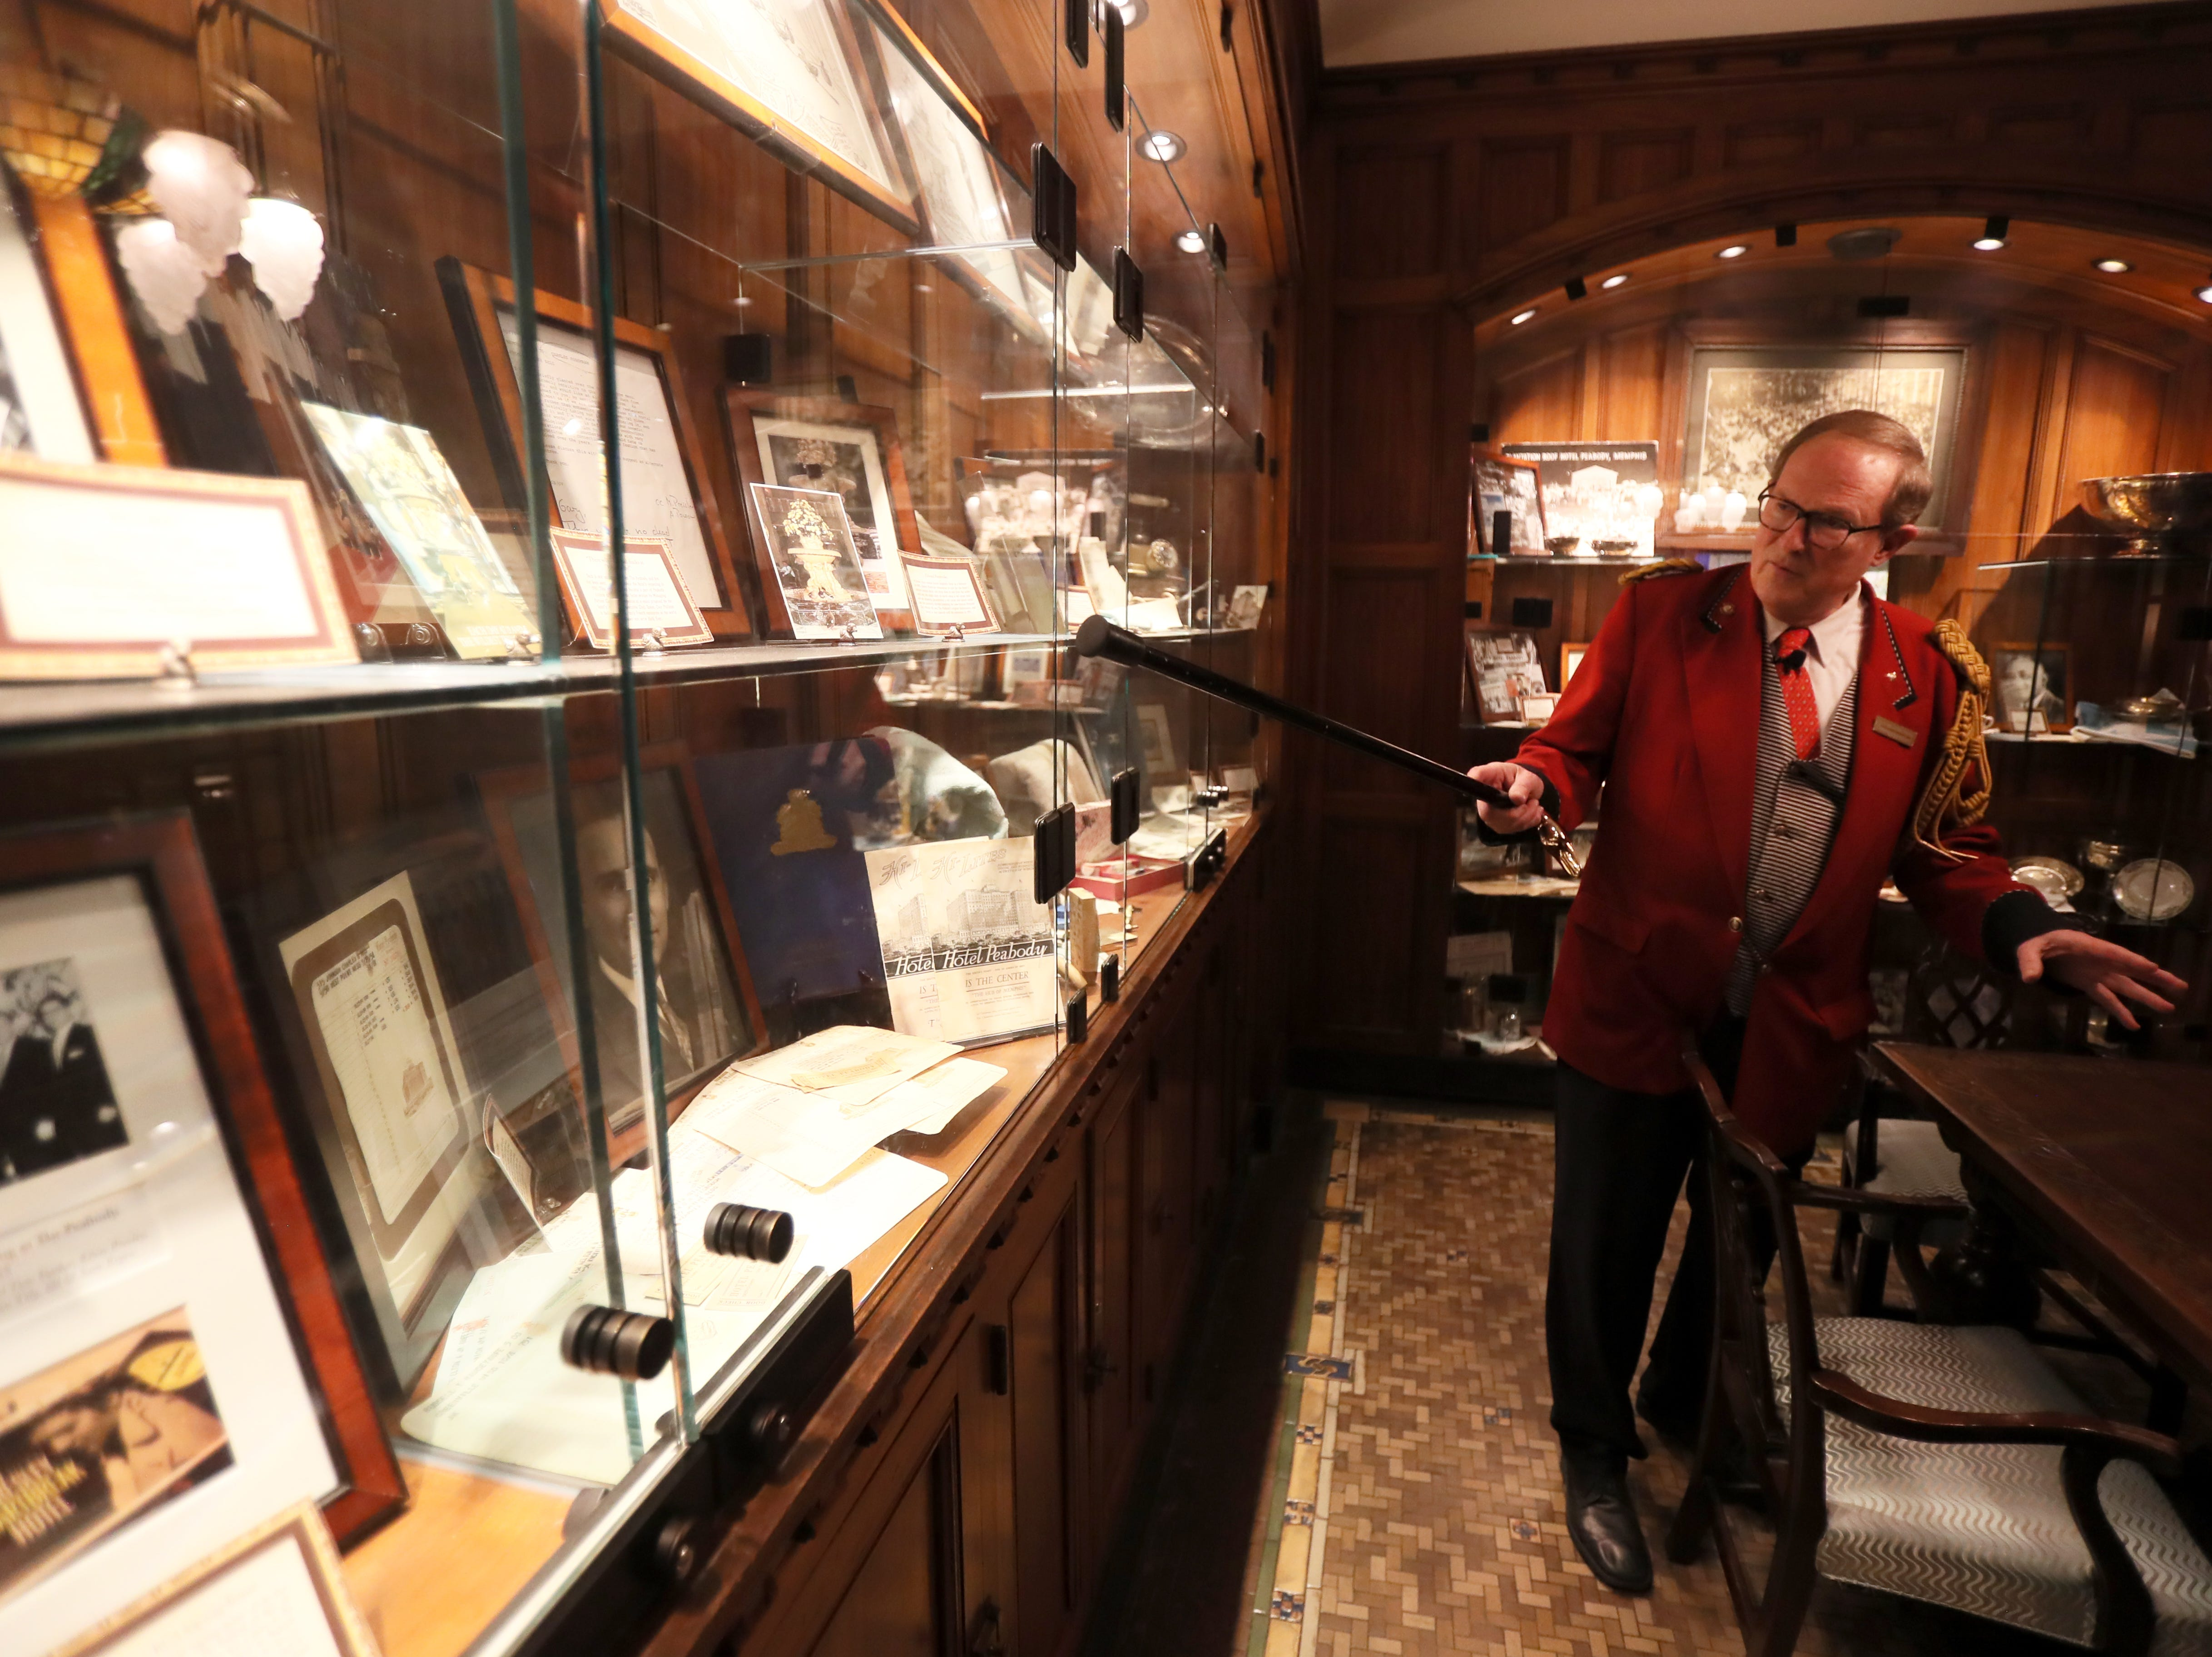 Doug Weatherford, Duckmaster at the Peabody Hotel gives a tour of the memorabilia room at the downtown Memphis hotel on Thursday, Feb. 21, 2019.